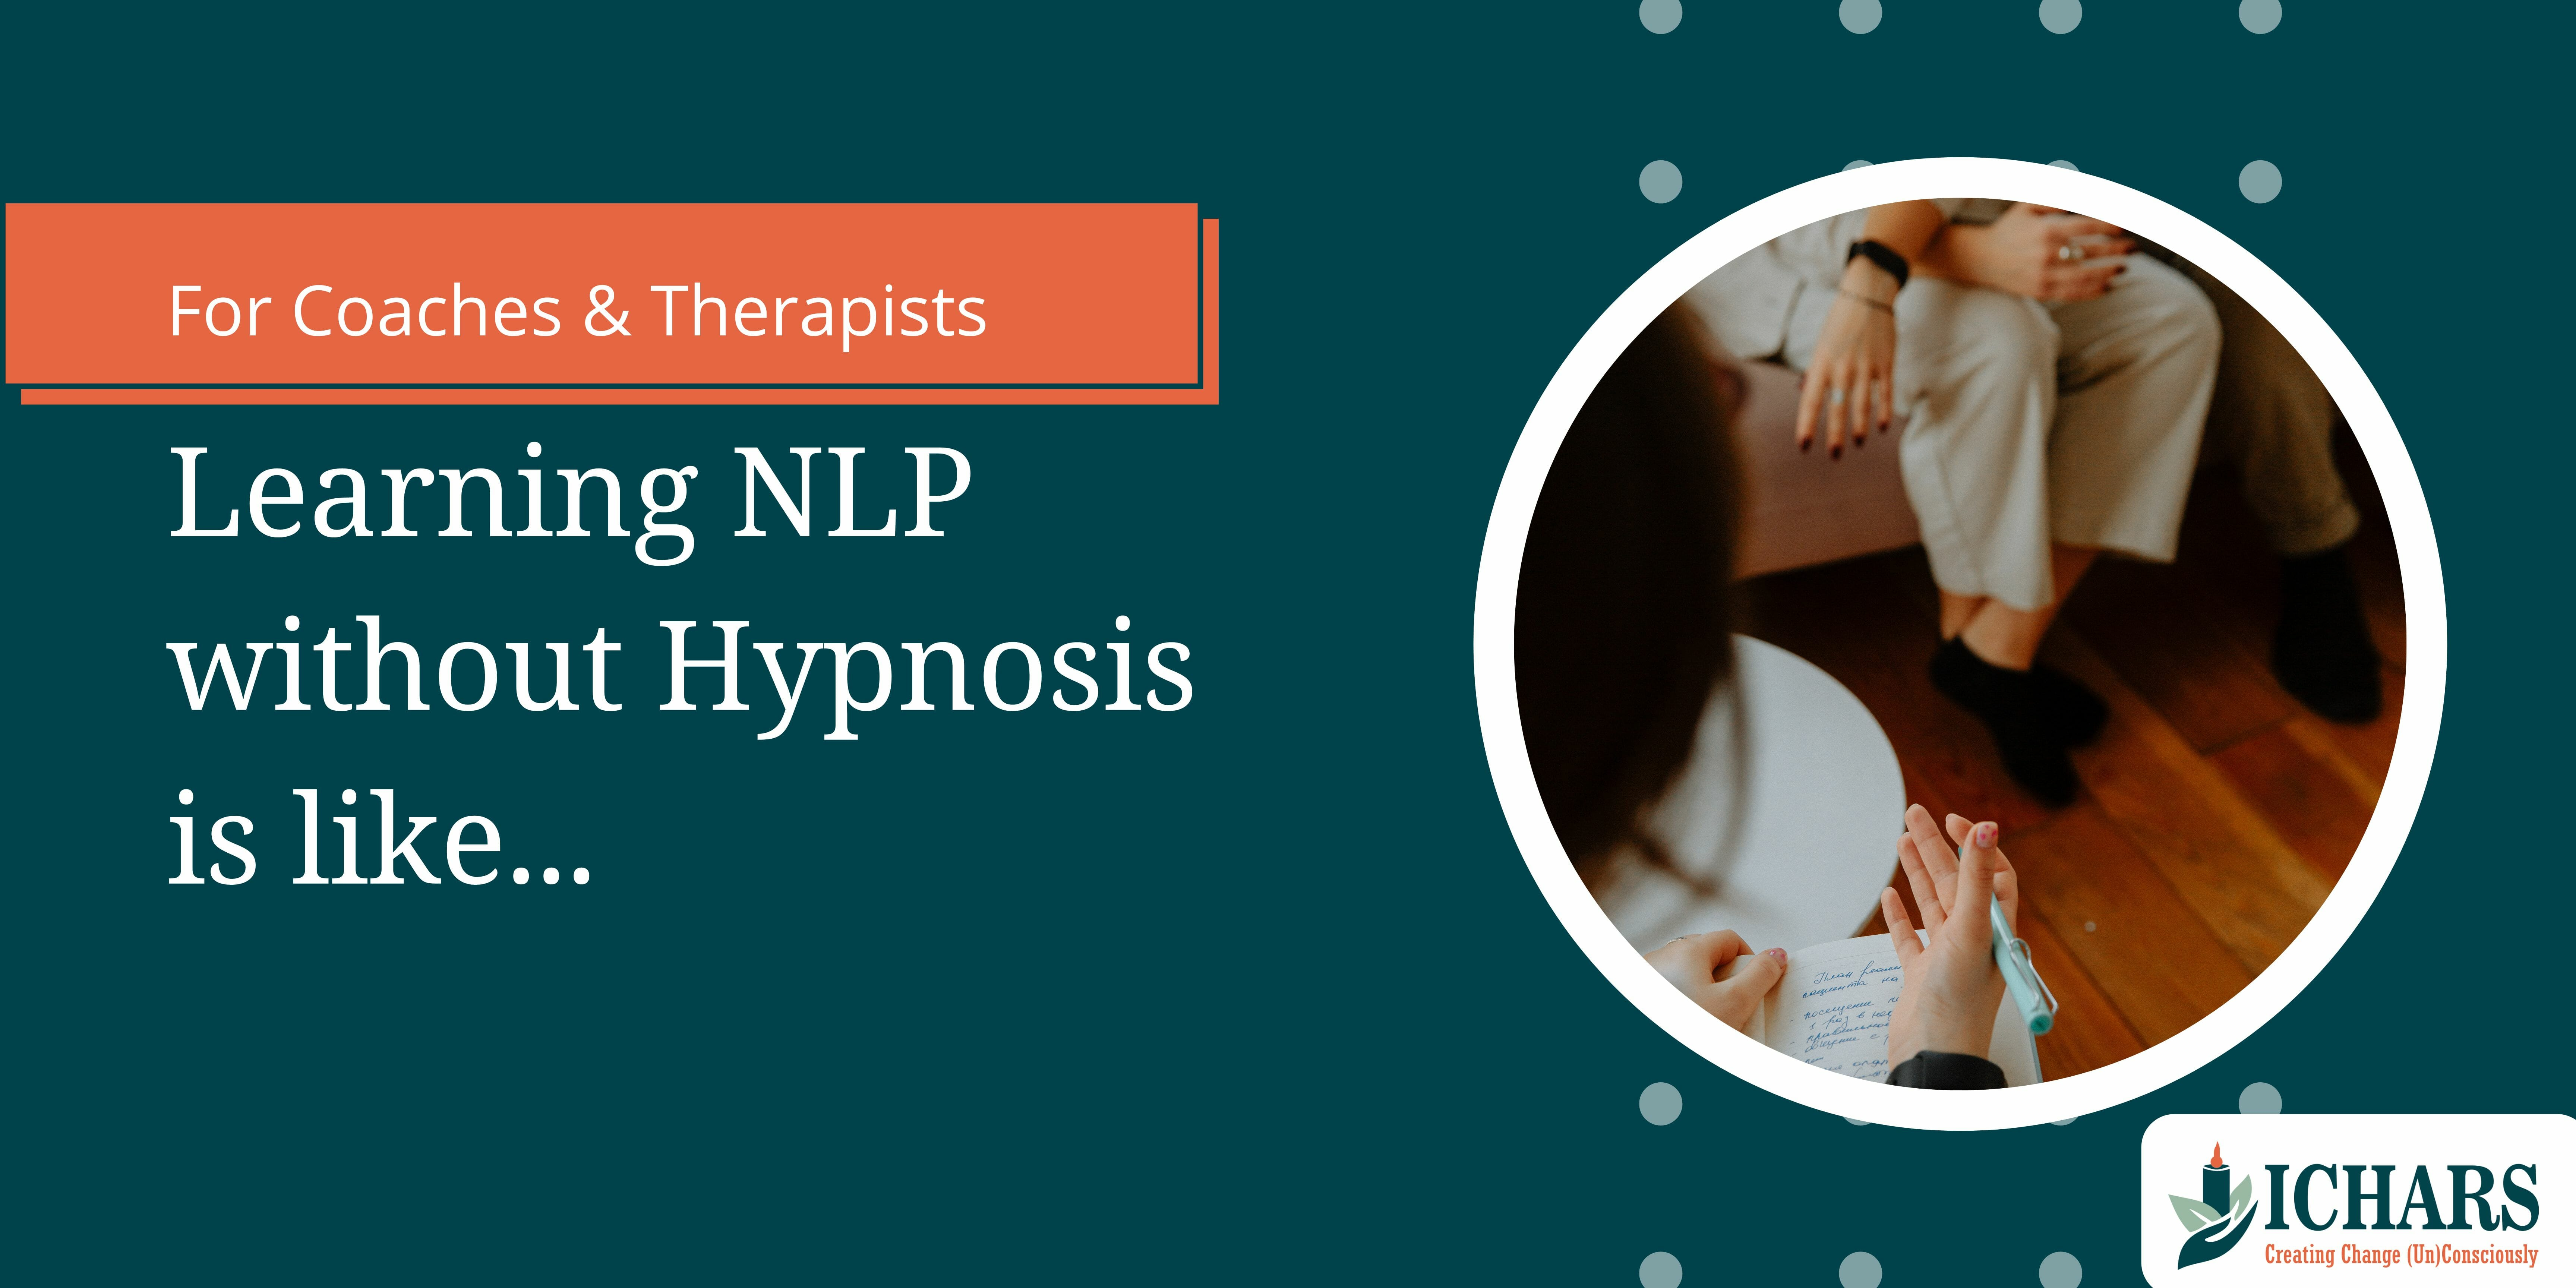 learning nlp without hypnosis - For therapists and coaches, Learning NLP without Hypnosis is Like…..